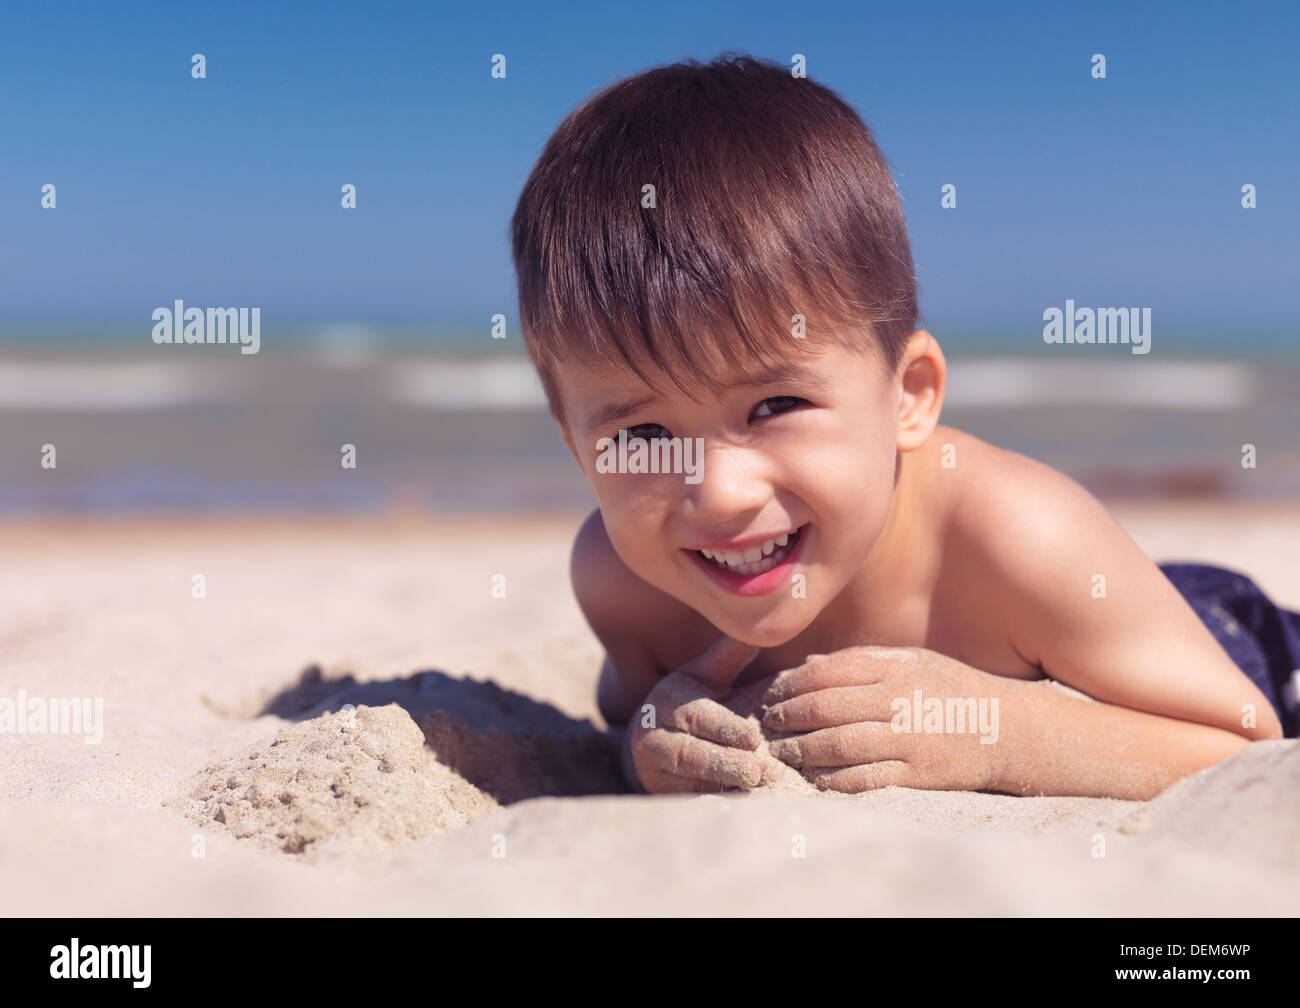 Portrait of a cute happy child playing in the sand on the beach. Lake Huron, Ontario, Canada. Stock Photo